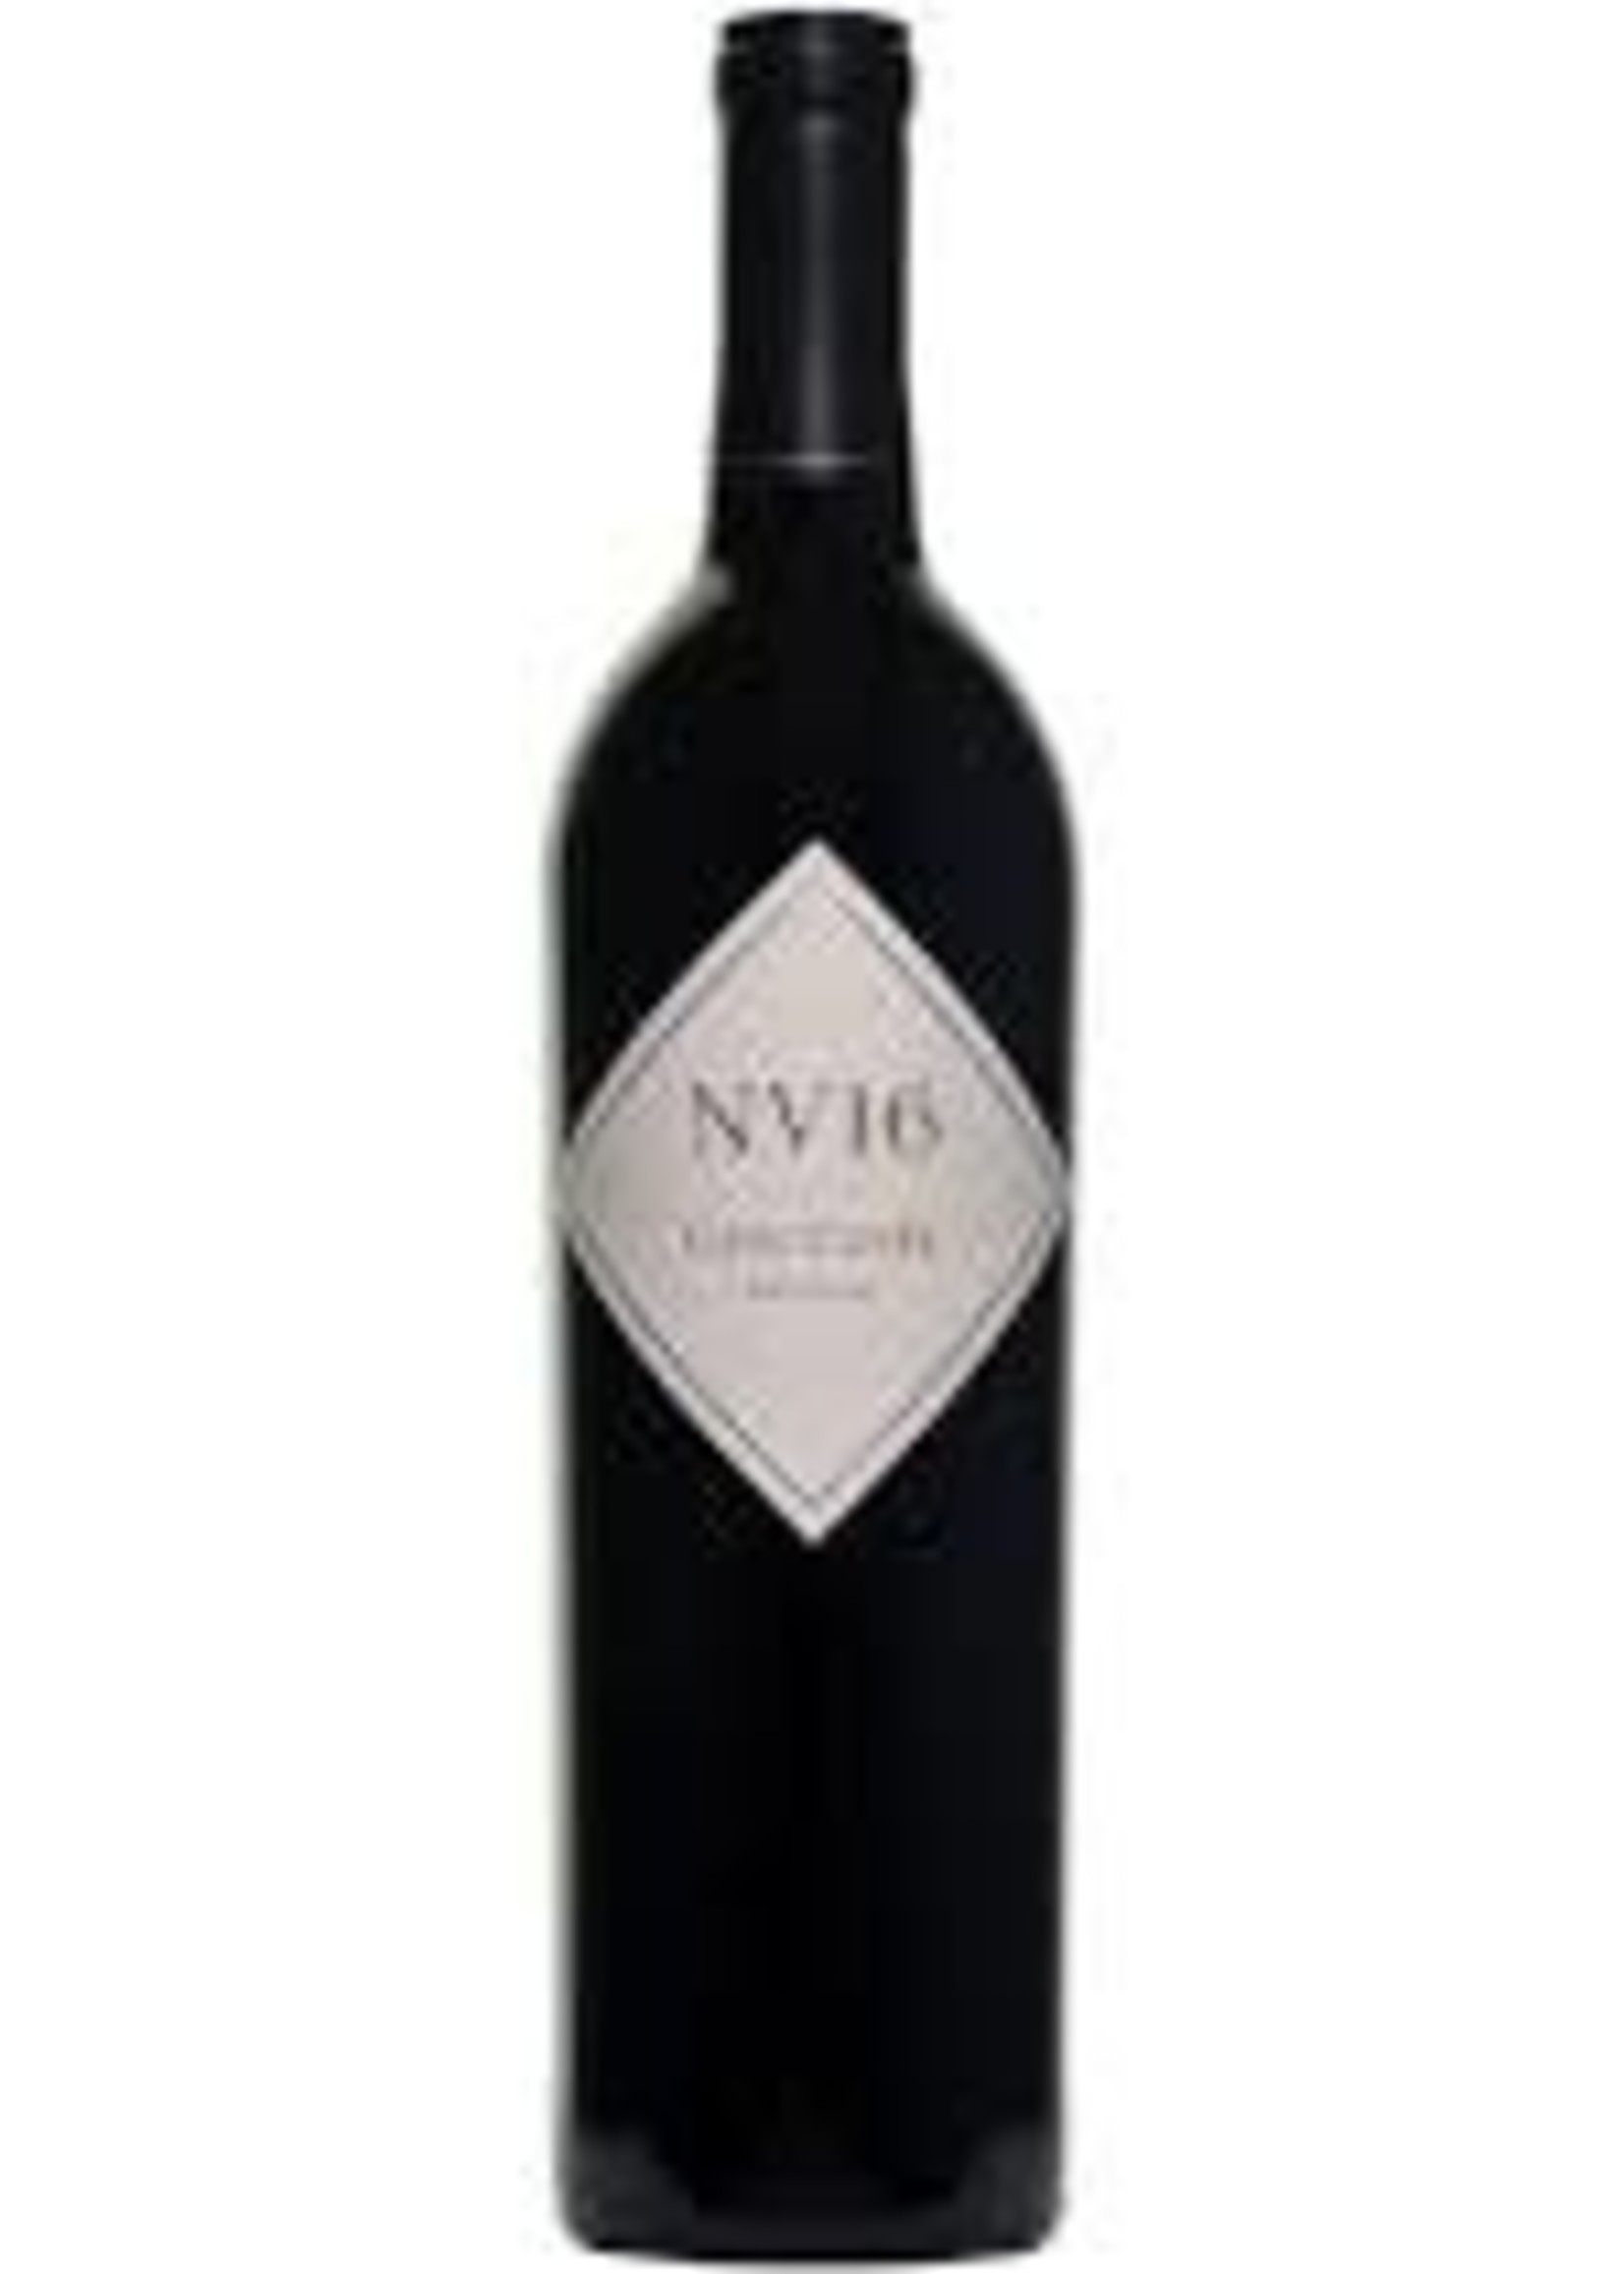 Cain NV16 Red Cain Cuvve 750ml